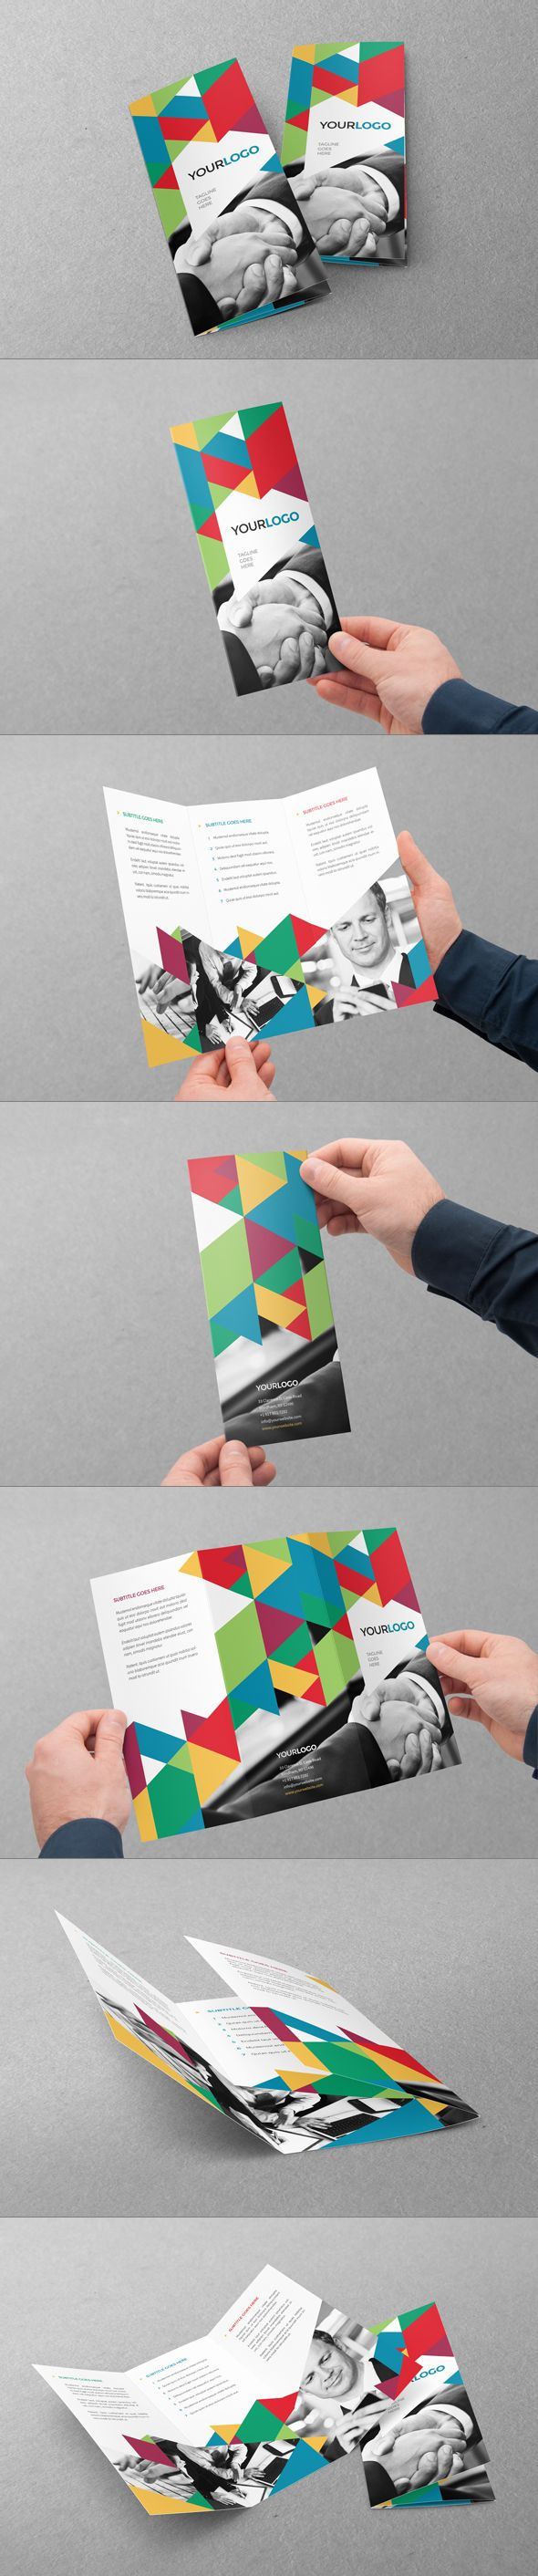 Colorful Business Trifold by Abra Design, via Behance